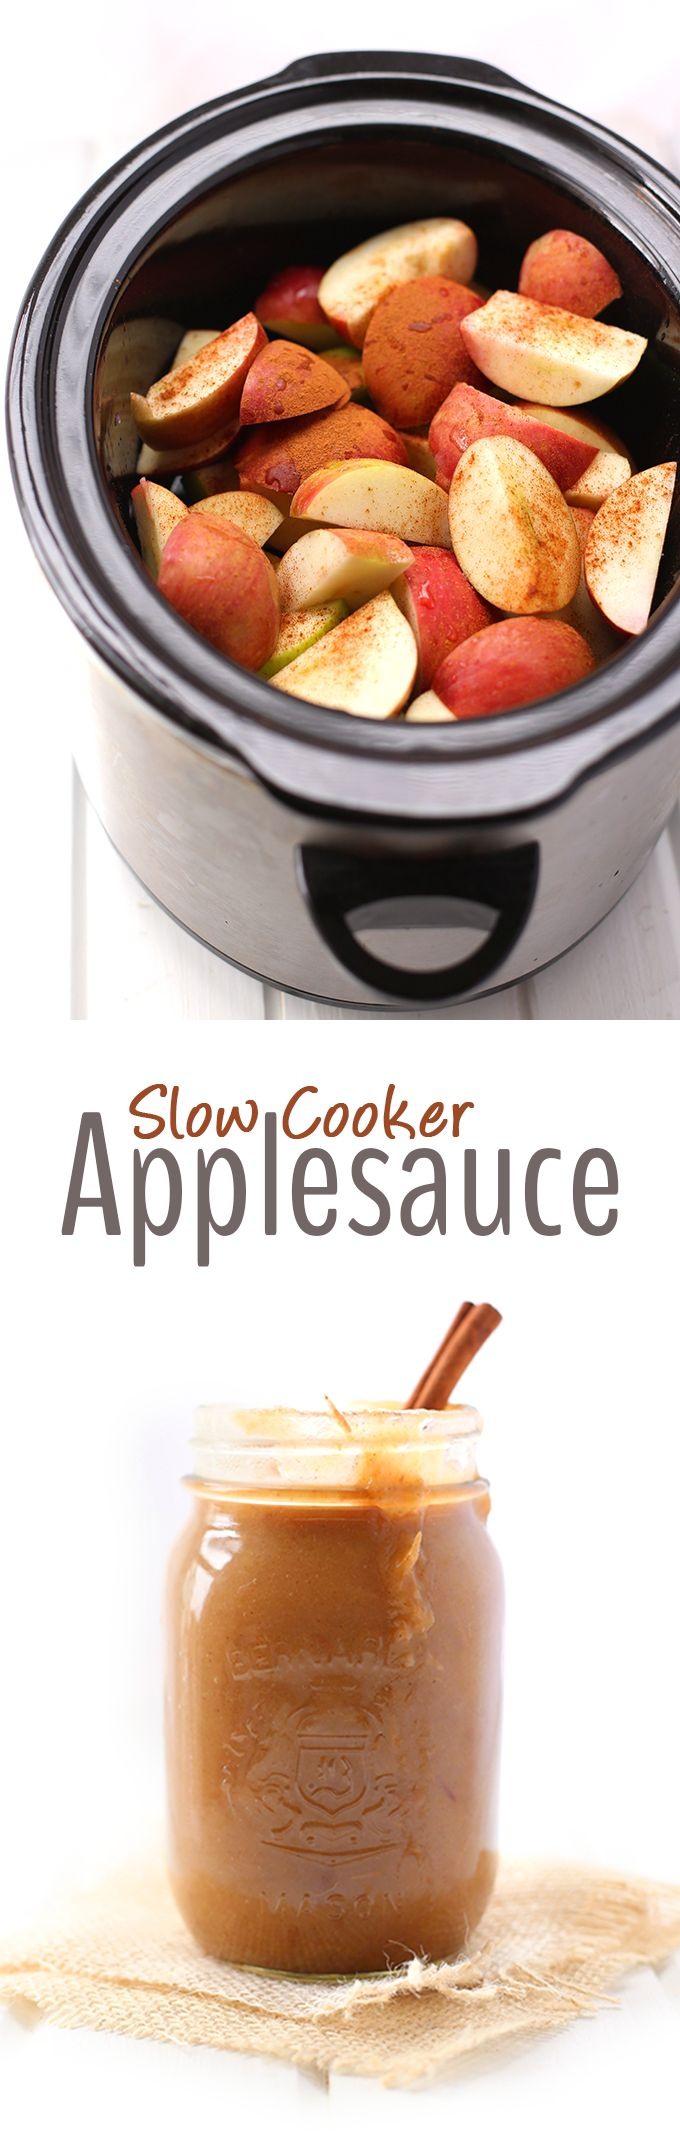 All you need are two ingredients (apples and cinnamon) and your slow cooker to make this super easy and sugar-free slow cooker applesauce recipe! Perfect for Fall snacking or to use in baked goods!